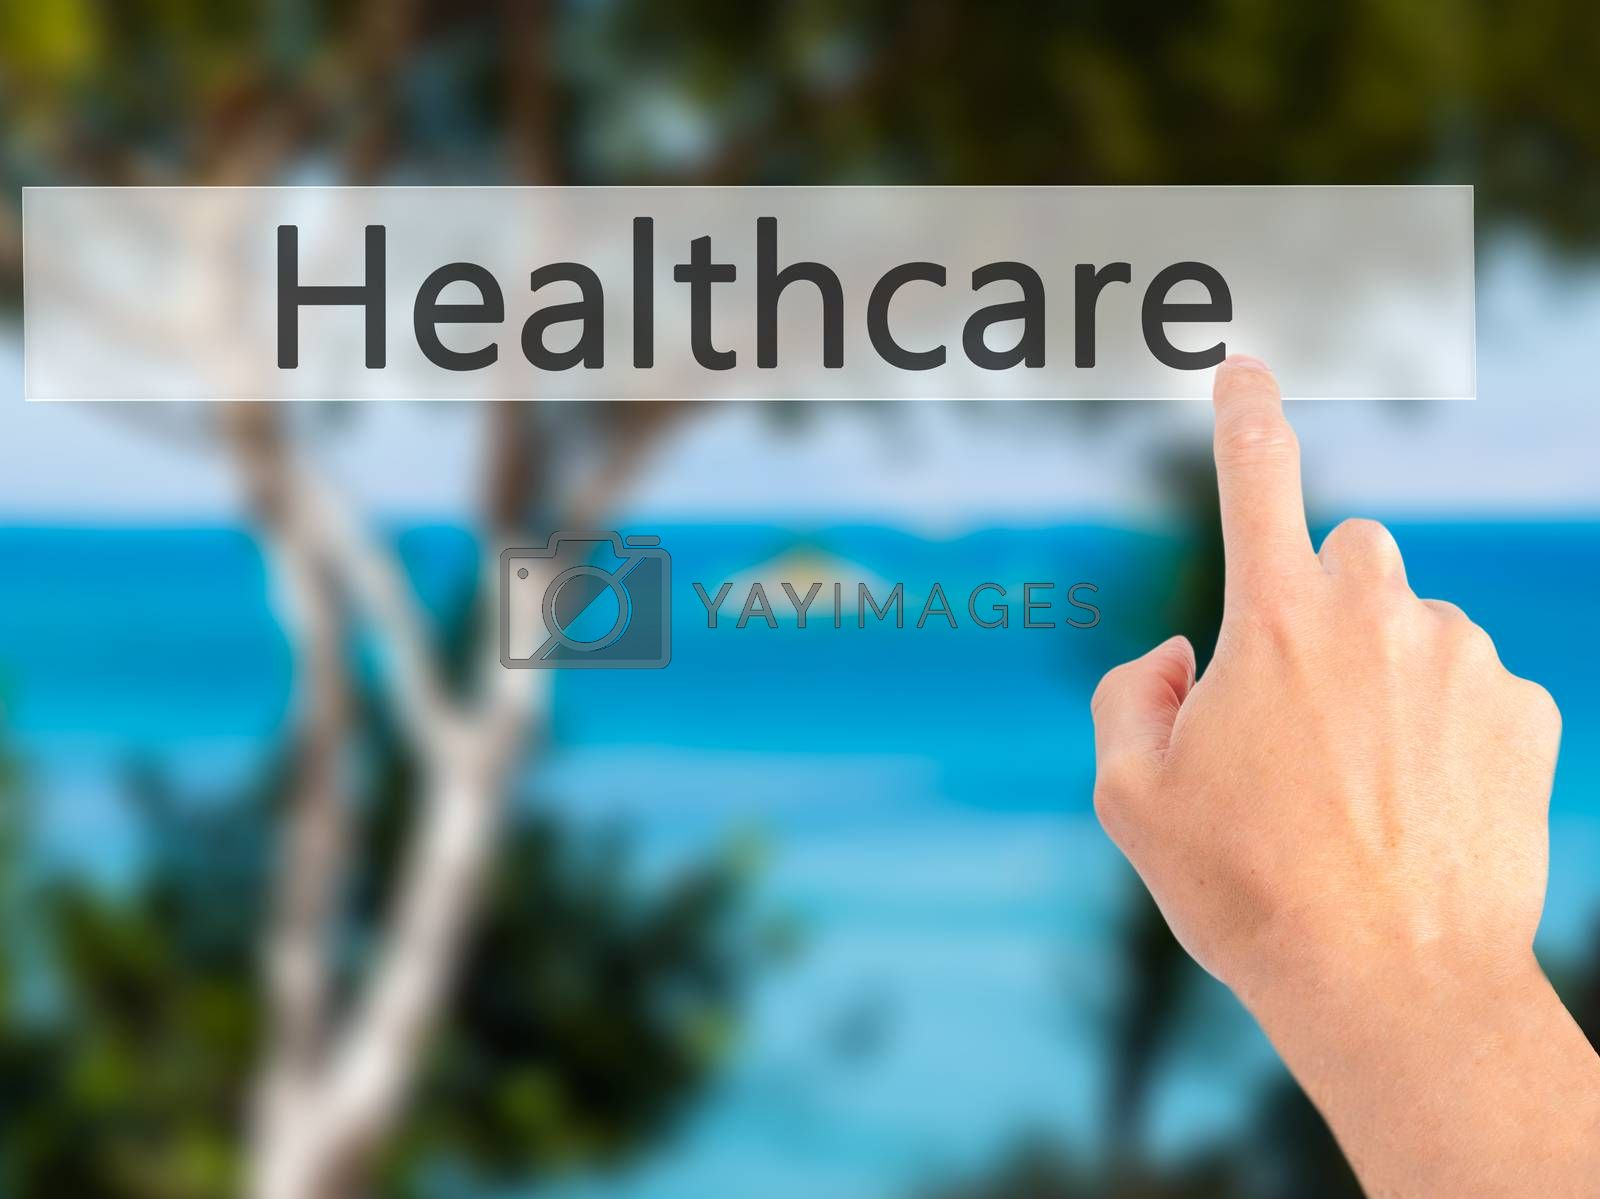 Healthcare - Hand pressing a button on blurred background concep by jackald